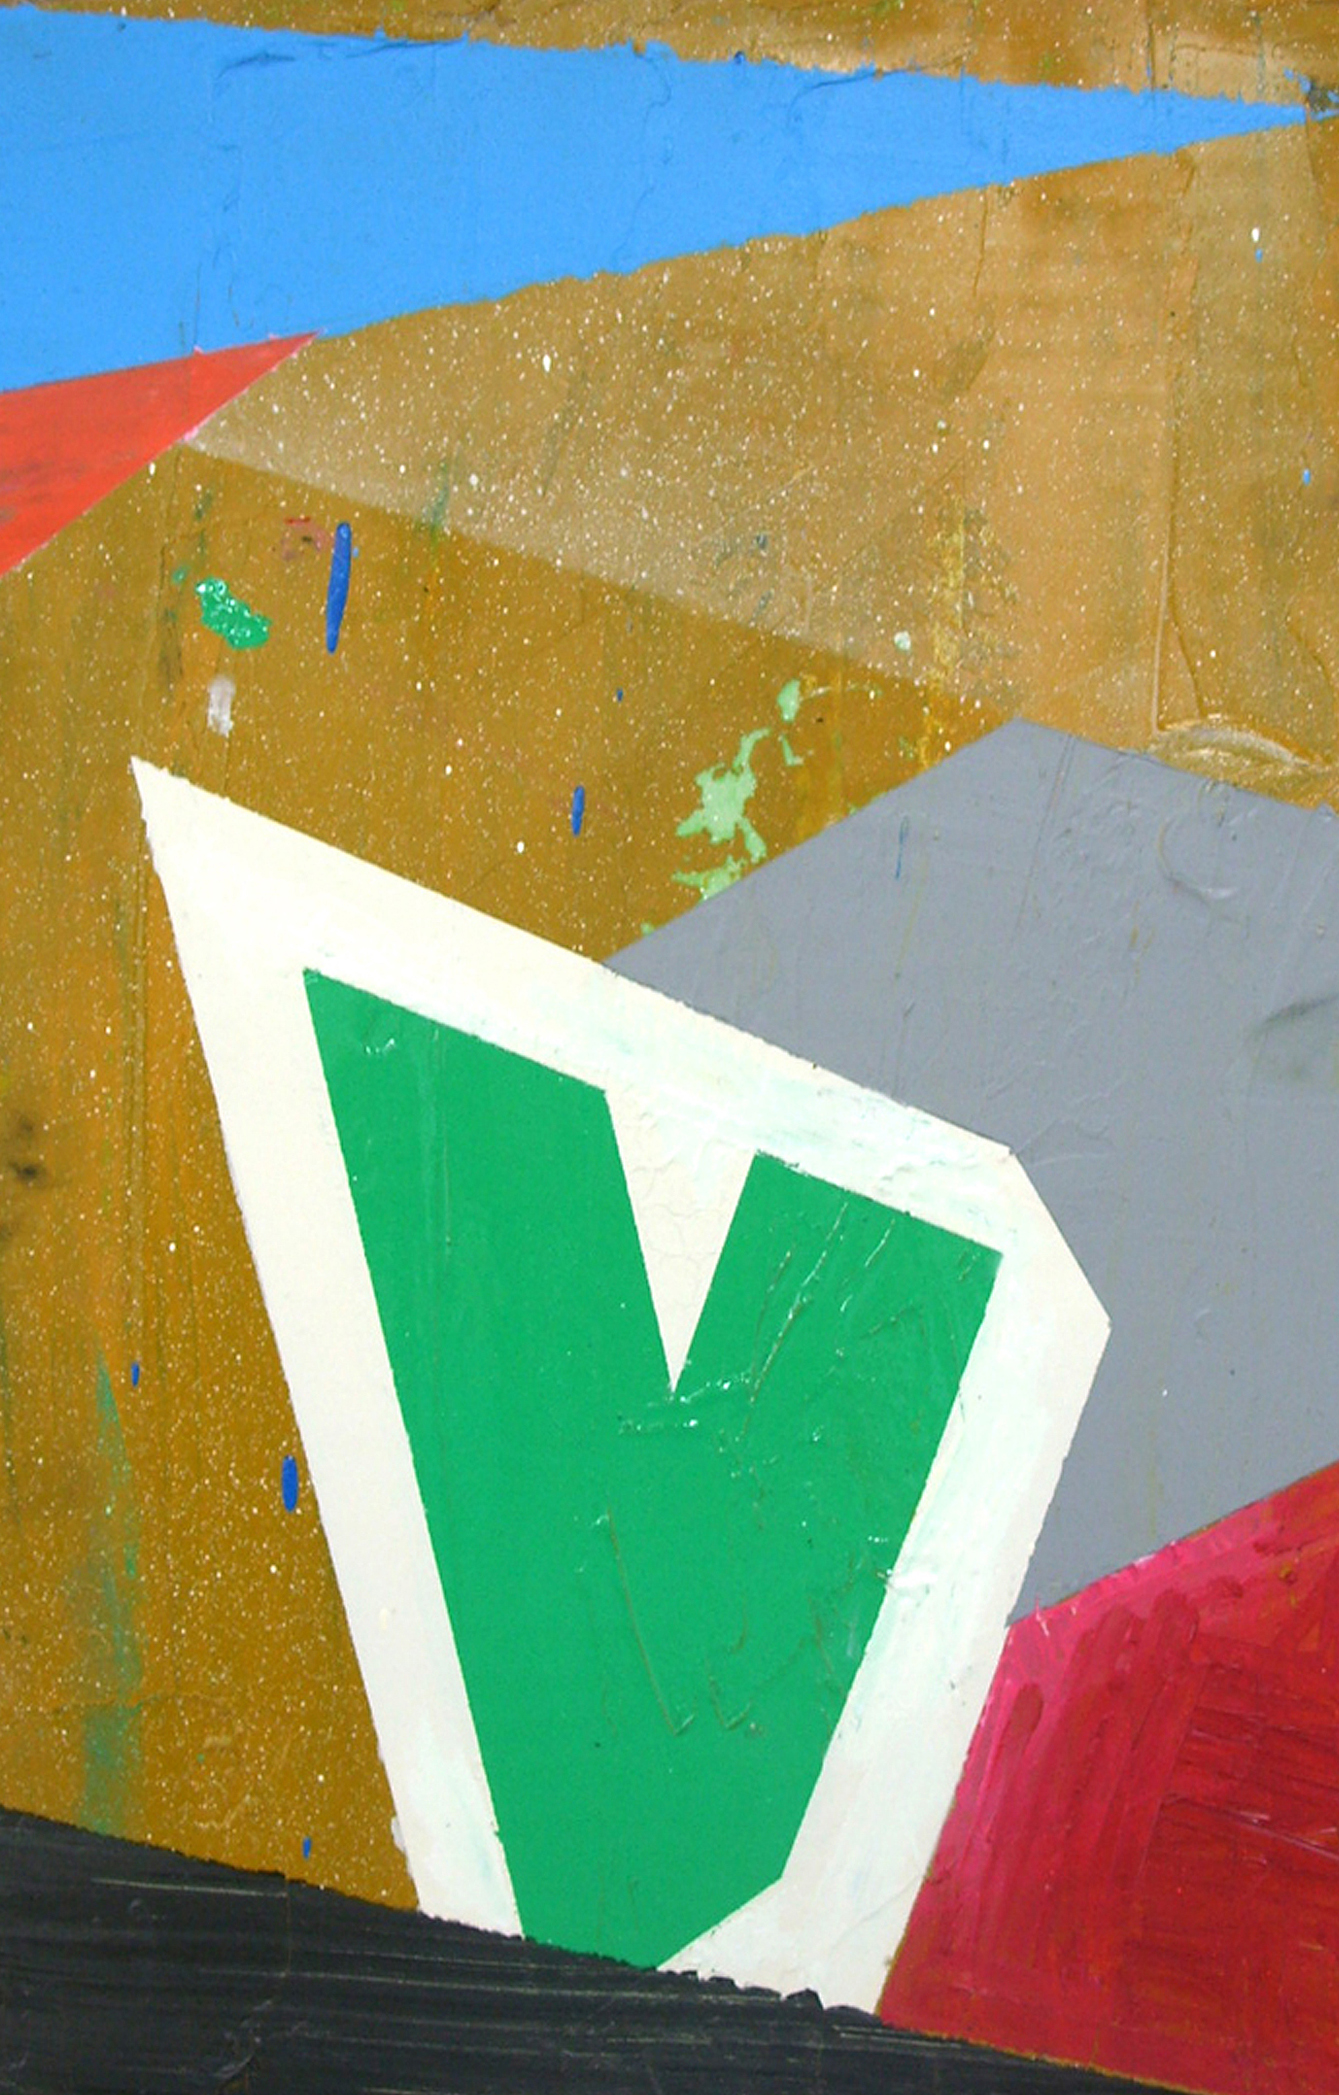 'Vision' (After Vision Streetwear), 2007, mixed-media on cardboard, 30 x 20 cm